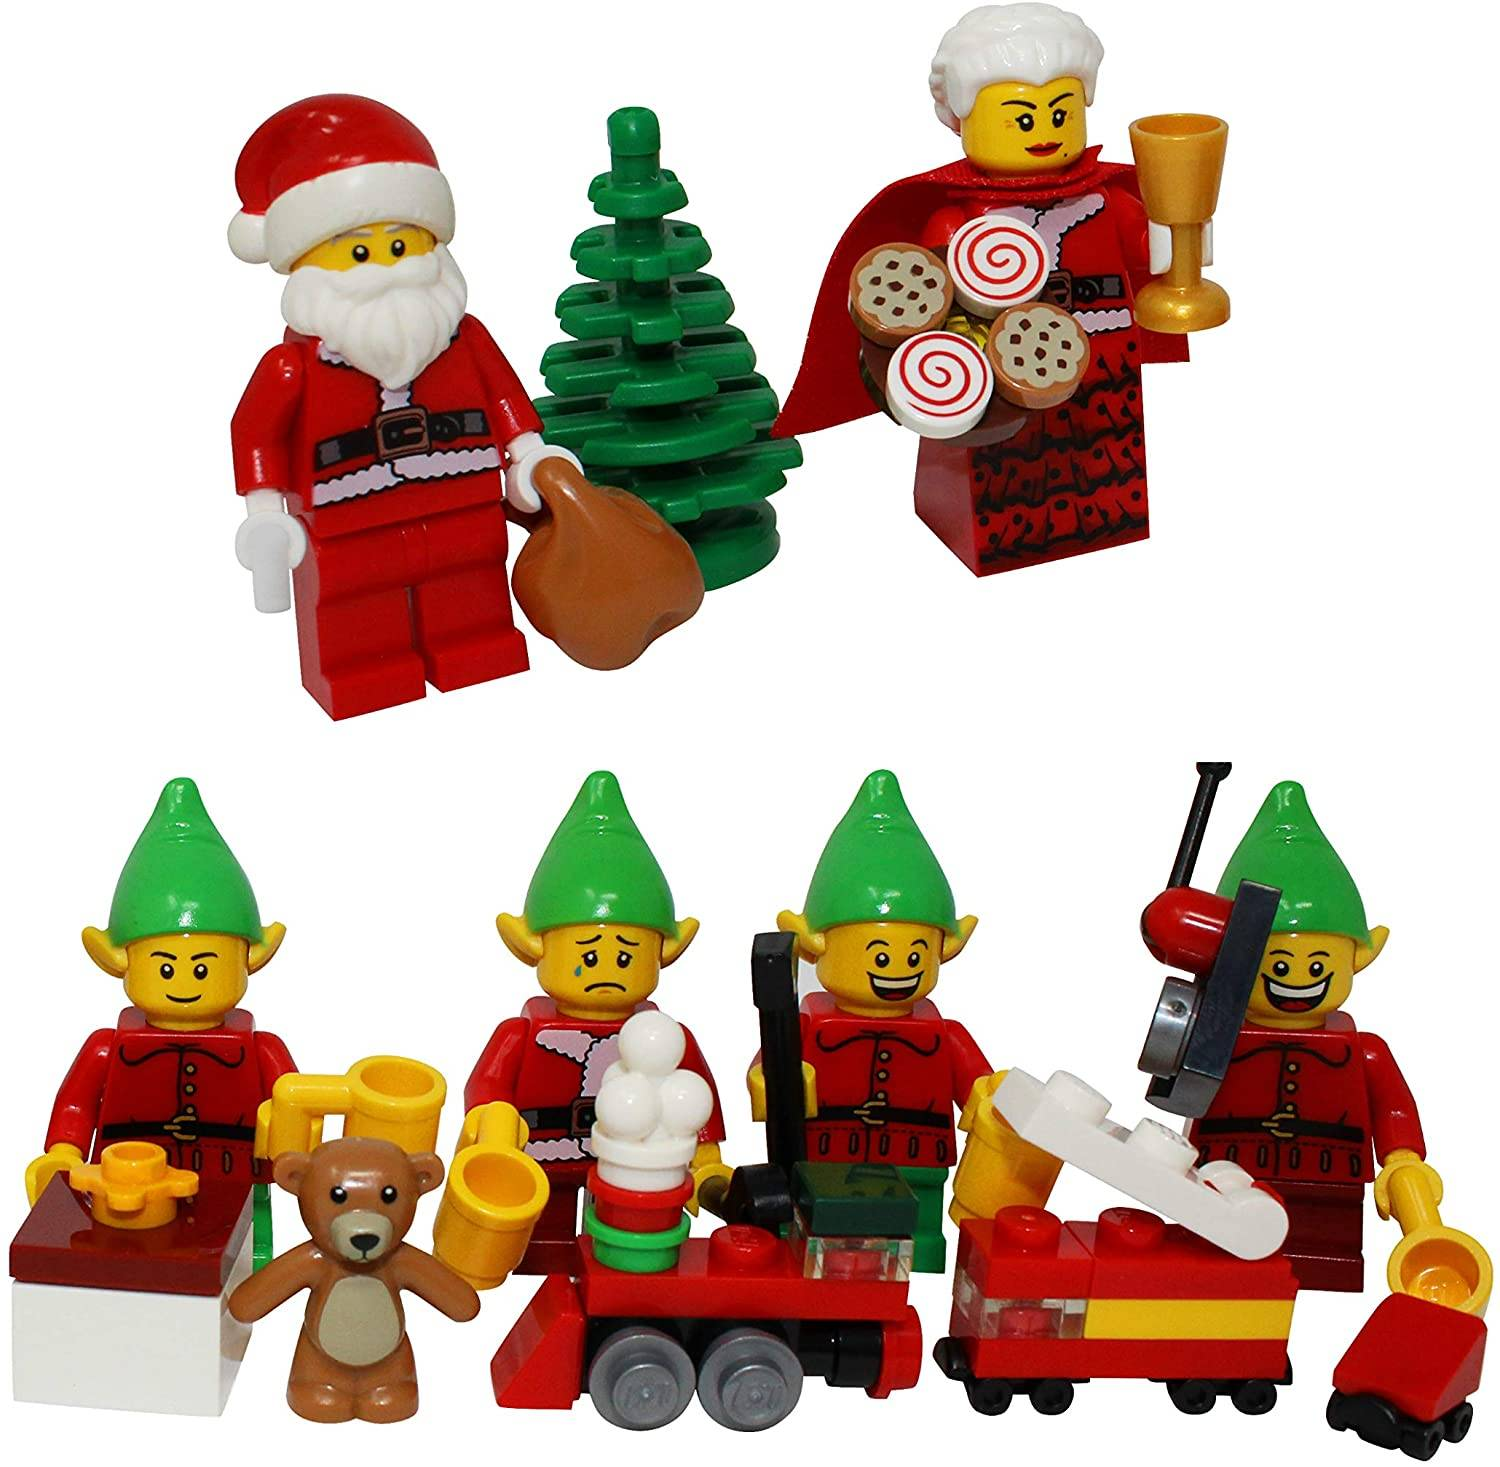 Lego Christmas with Santa